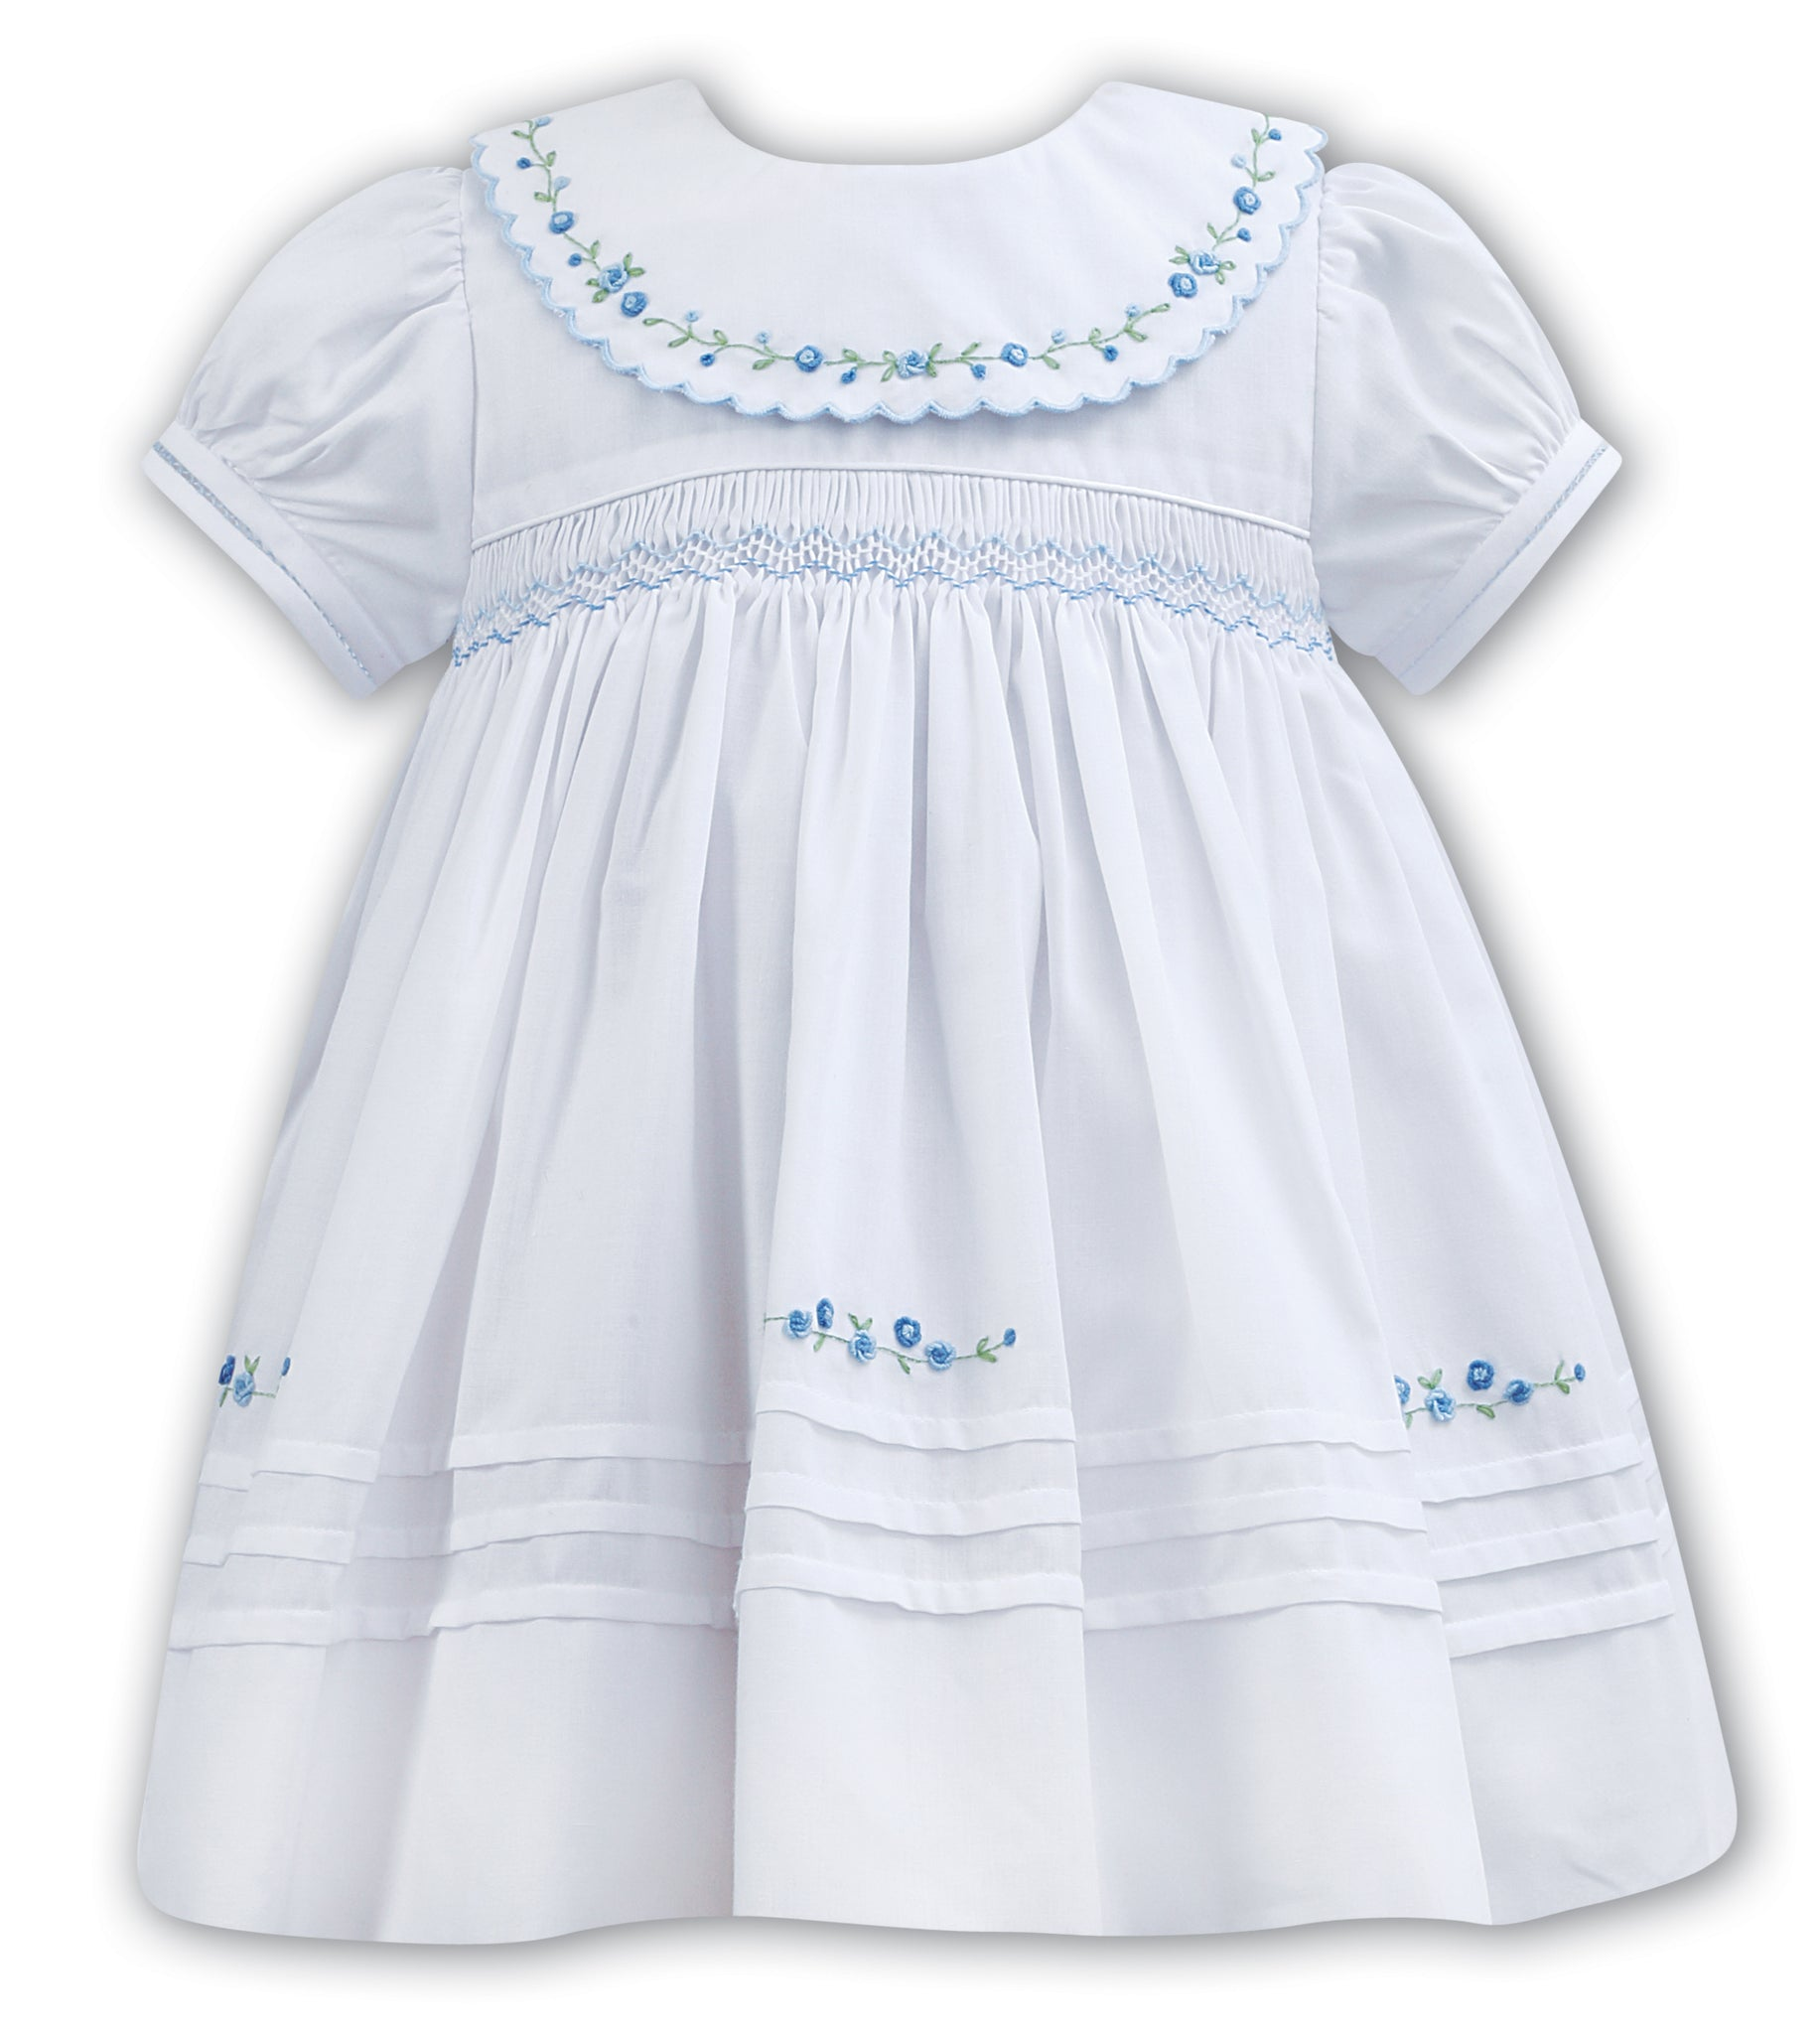 Sarah Louise hand smocked  dress